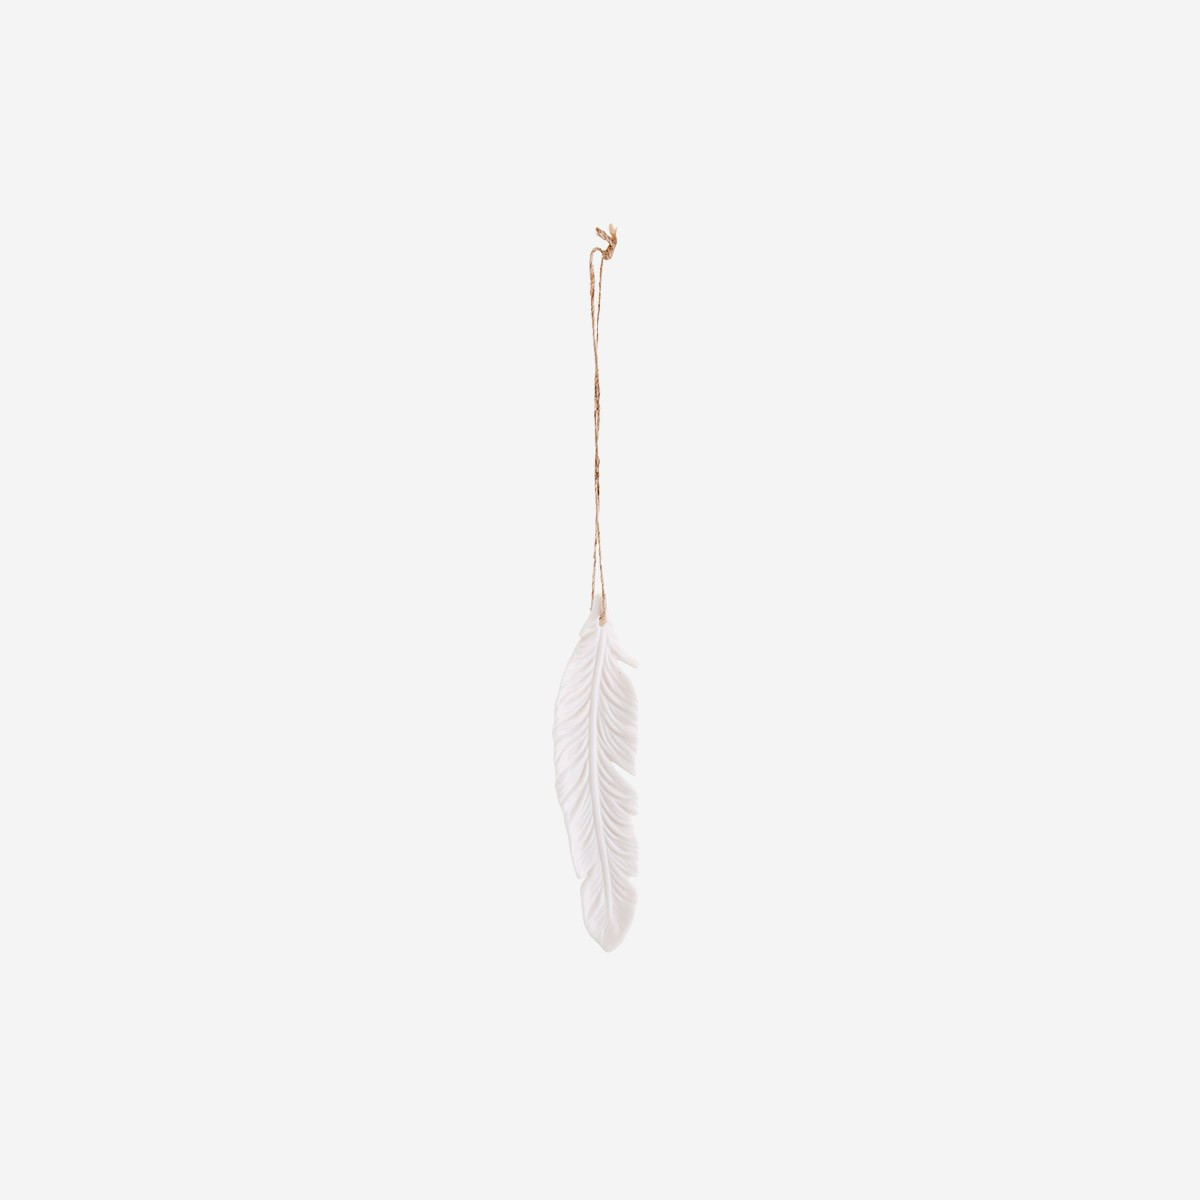 Hanging porcelain feather